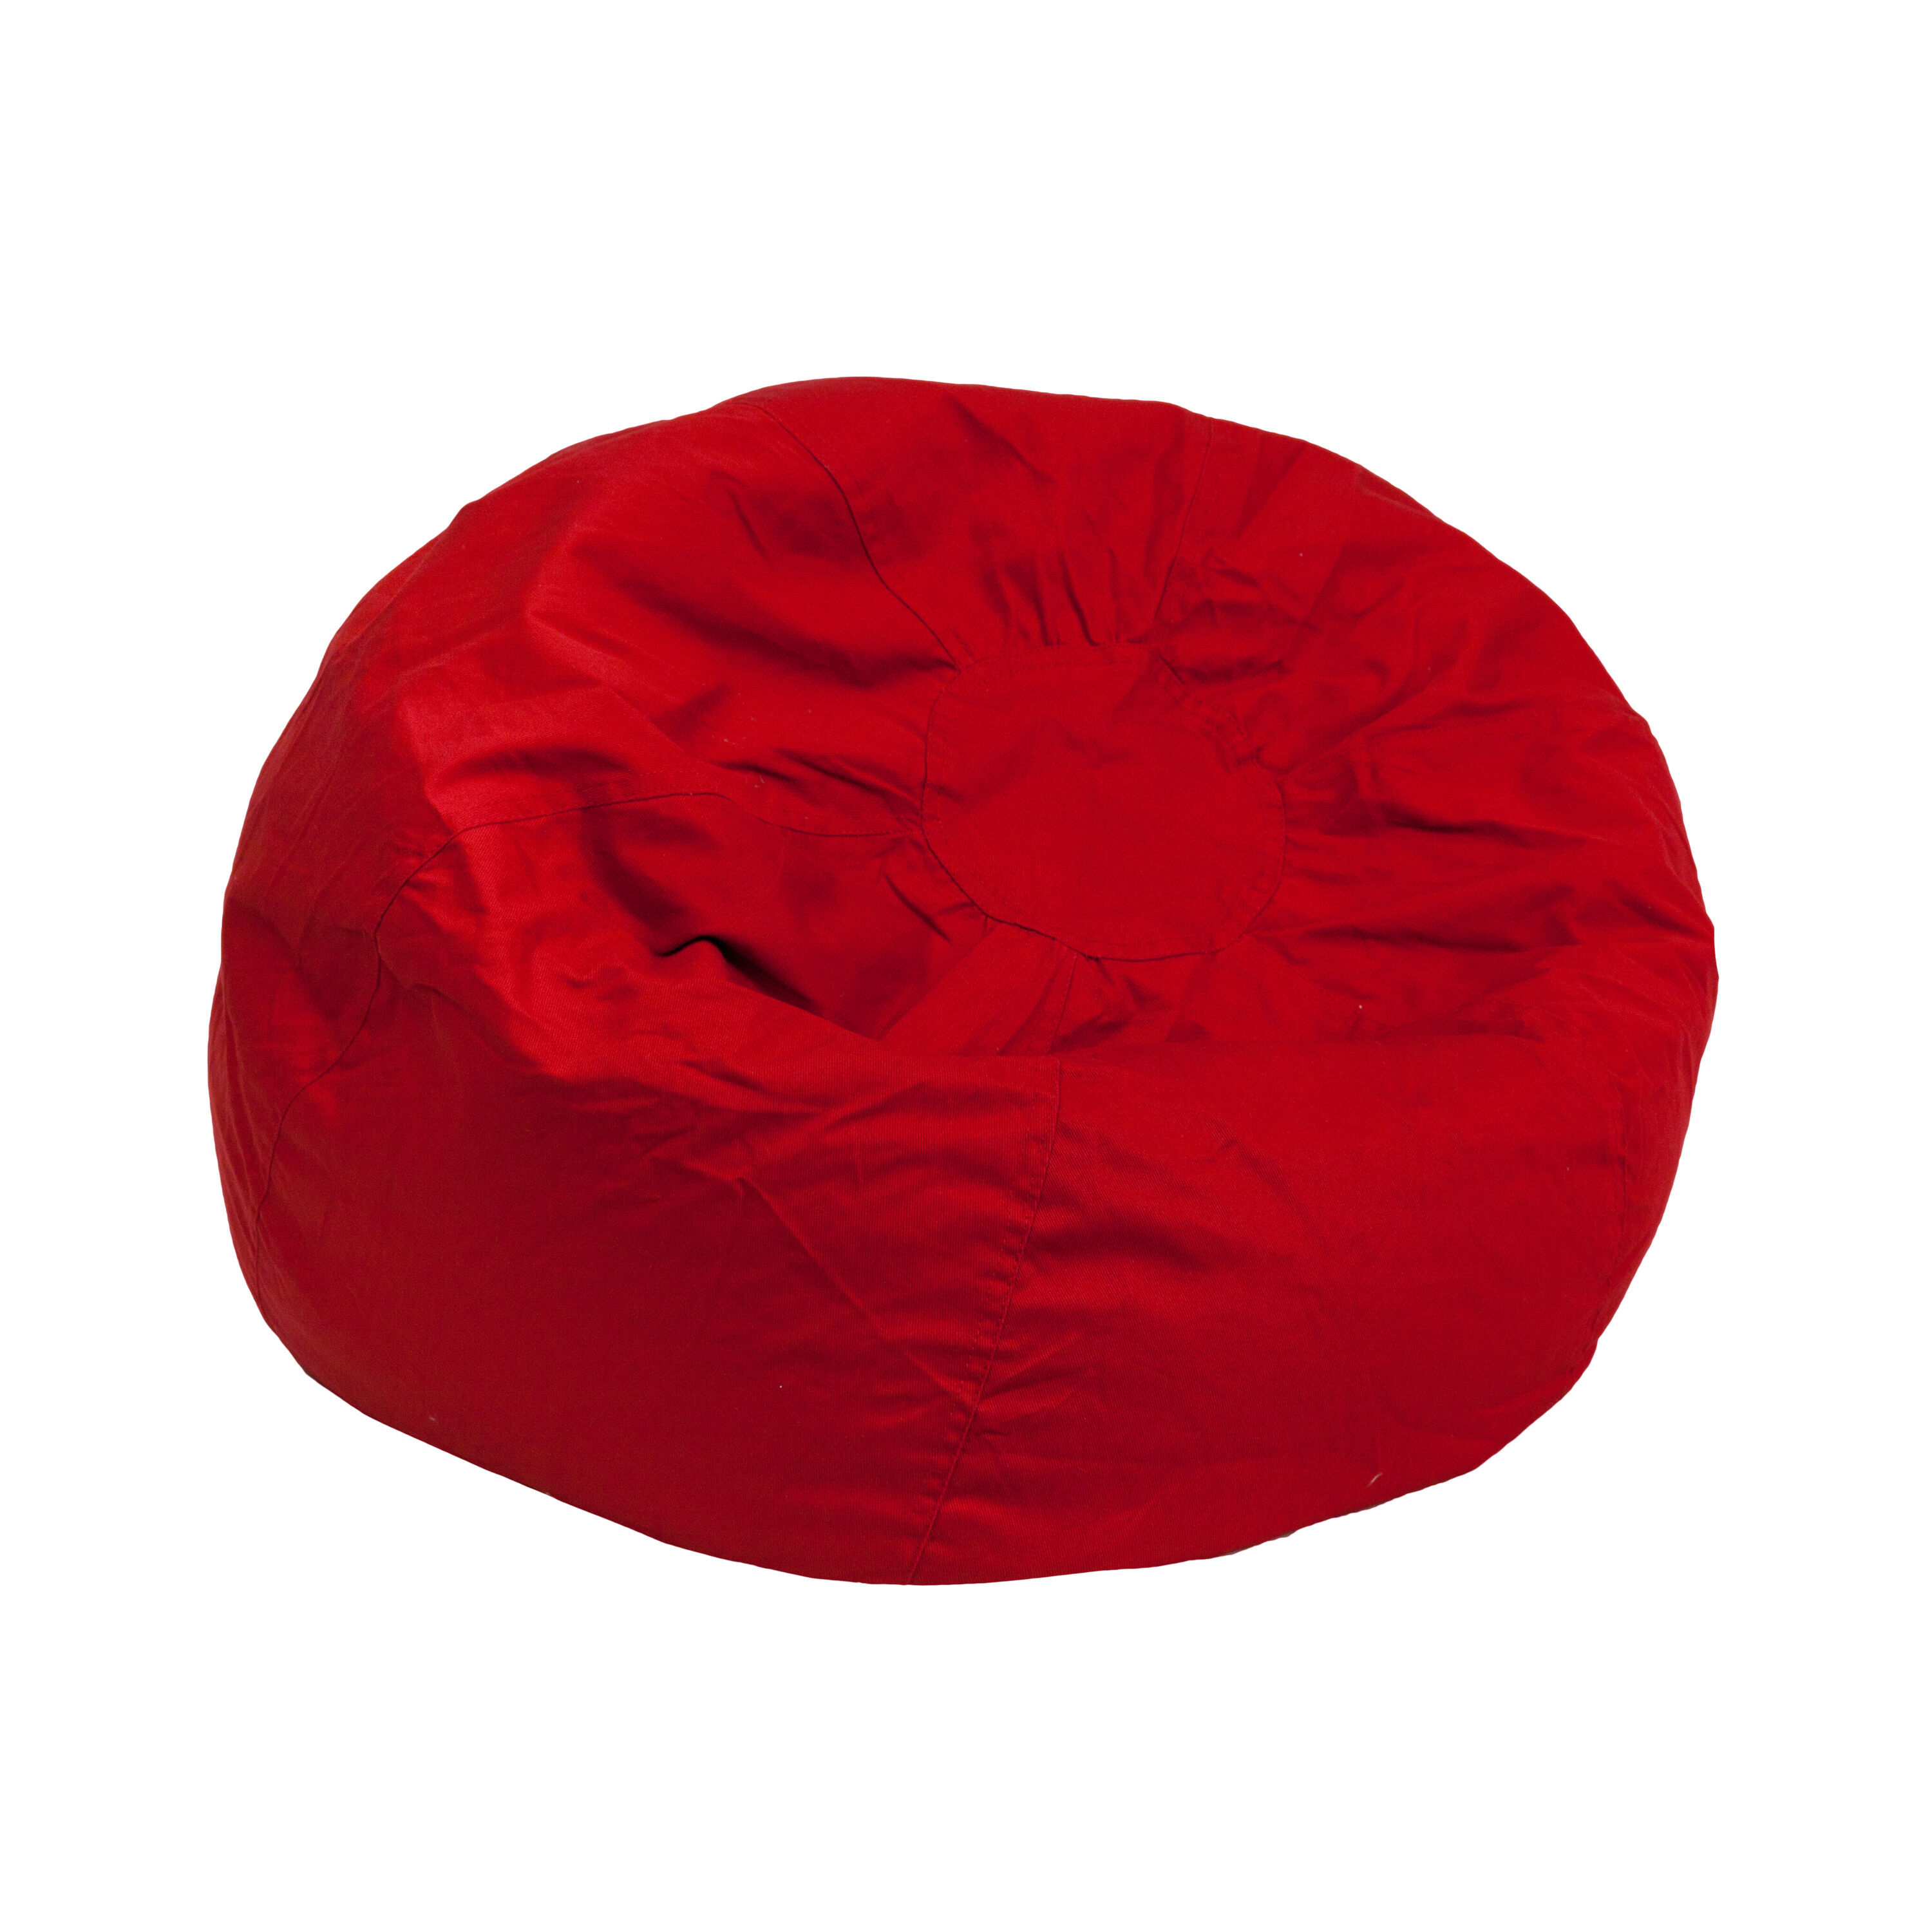 ... Our Small Solid Red Kids Bean Bag Chair Is On Sale Now.